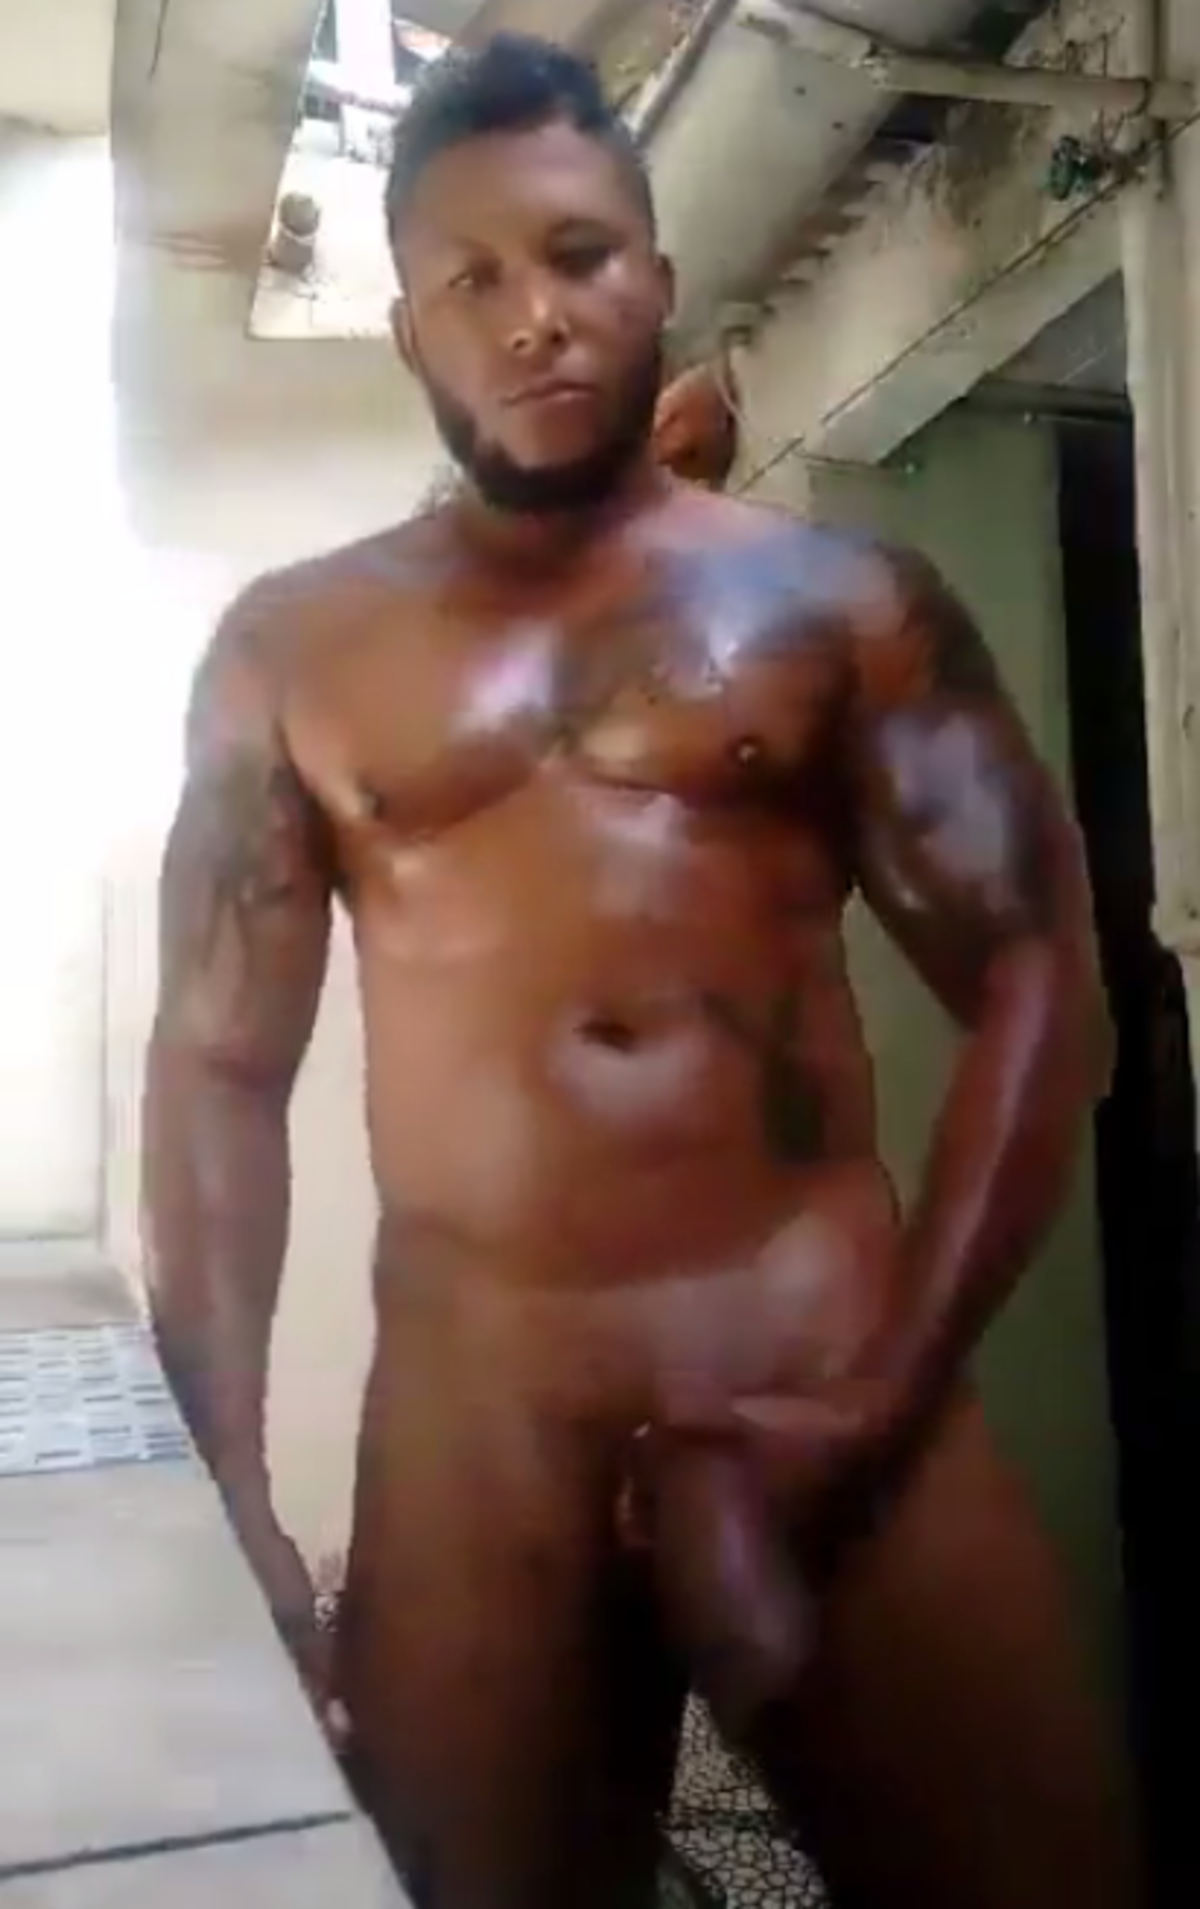 tall with a big dick: video edition vol 3 | the aazah post